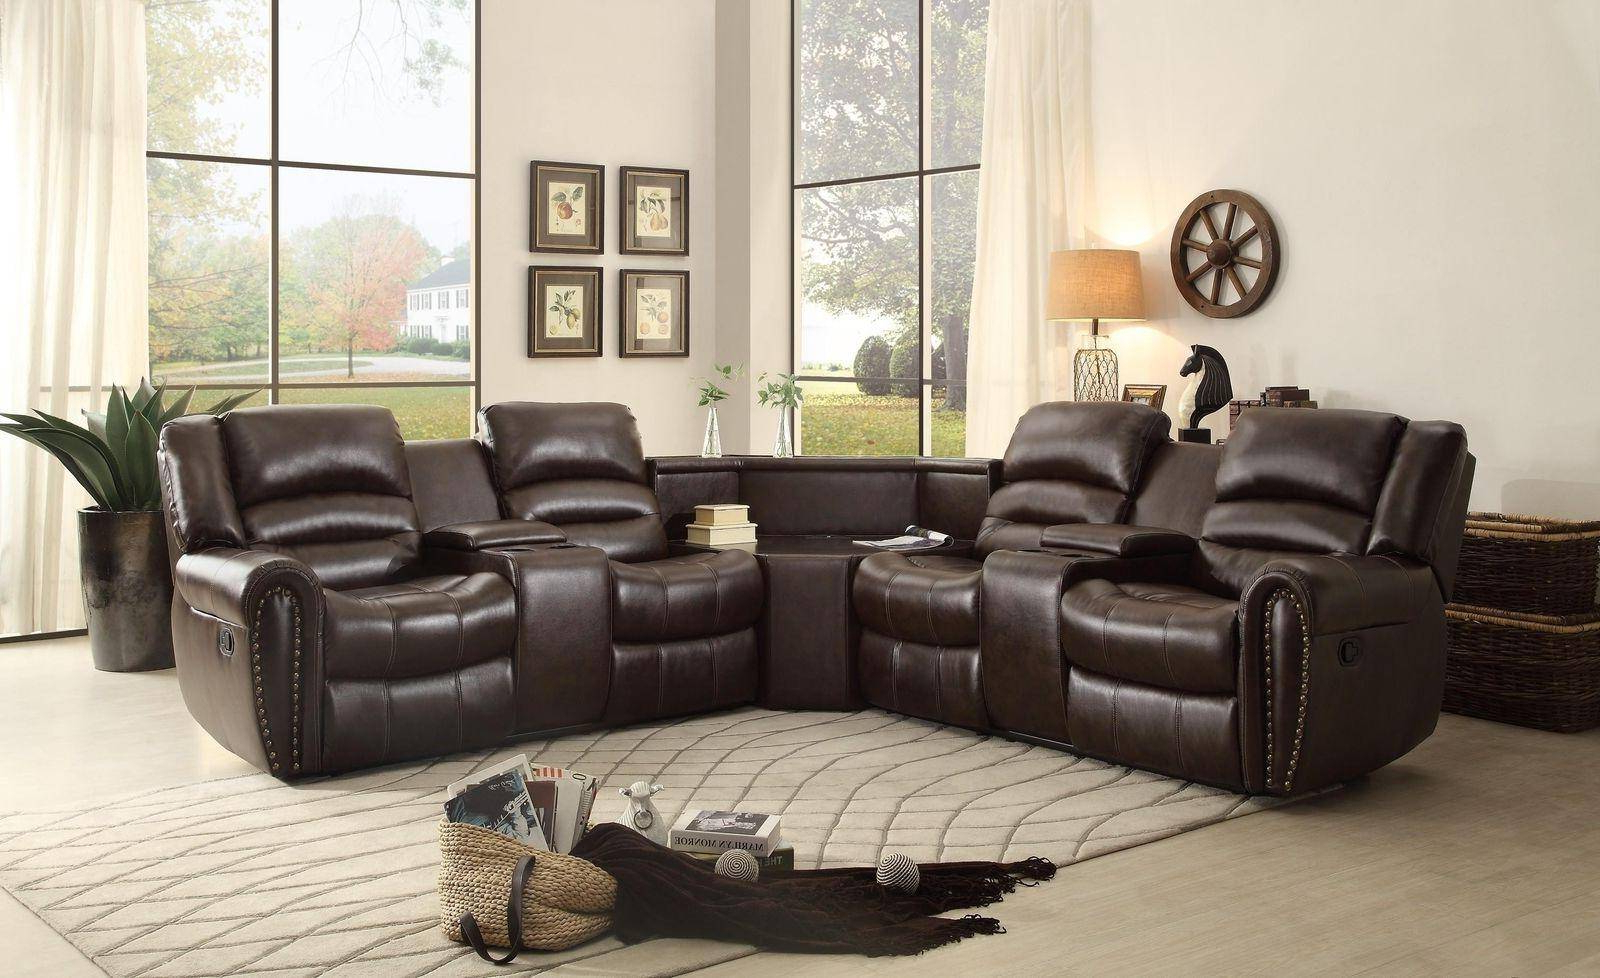 Newest Homelegance Palmyra Brown Bonded Leather Reclining With Regard To 3pc Bonded Leather Upholstered Wooden Sectional Sofas Brown (View 6 of 20)